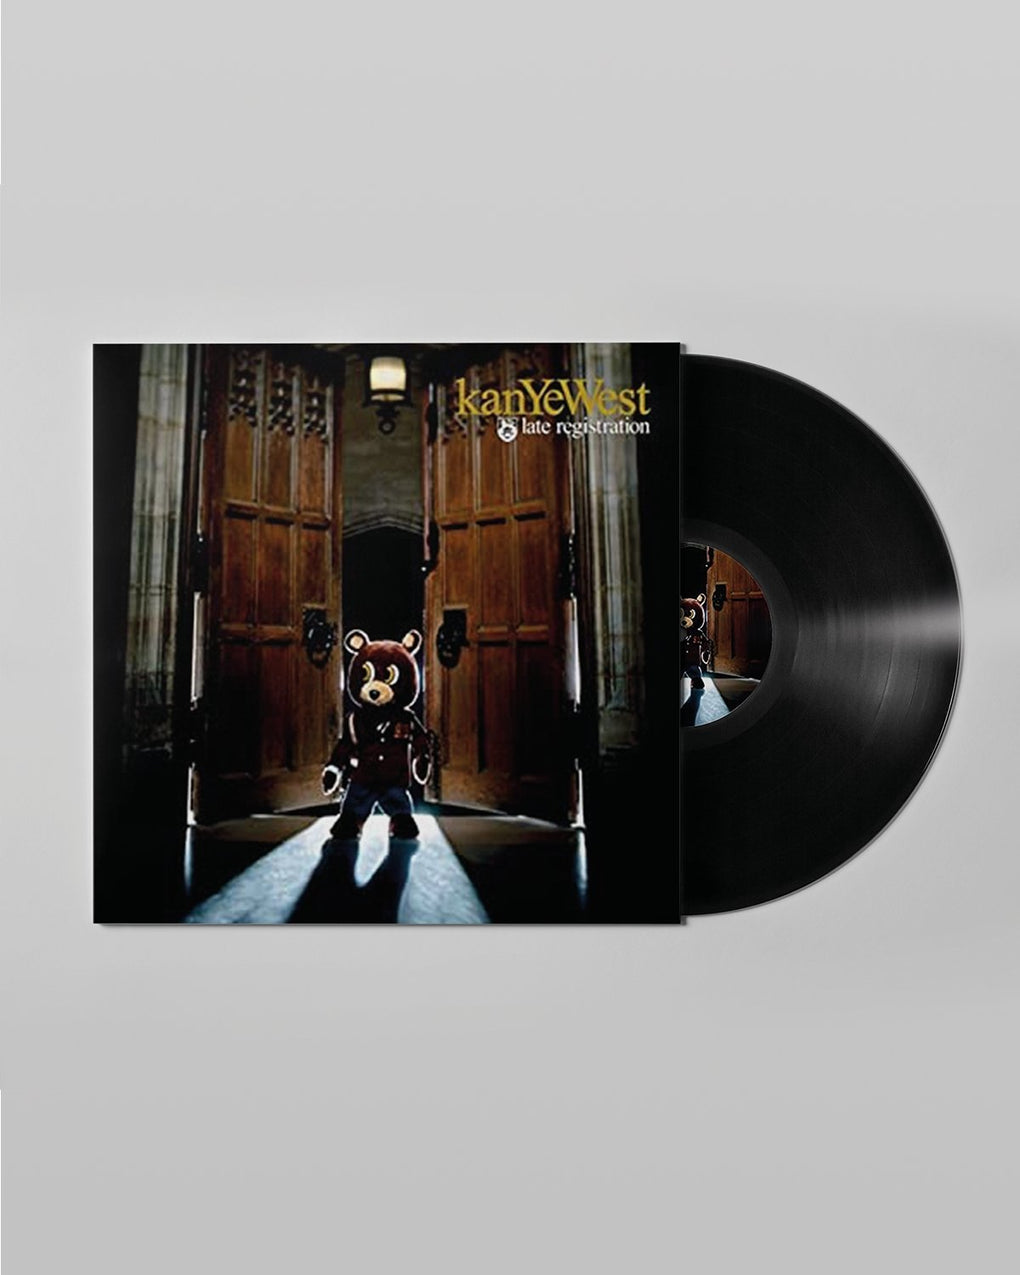 Kanye West - Late Registration // DON'T TELL MAMA